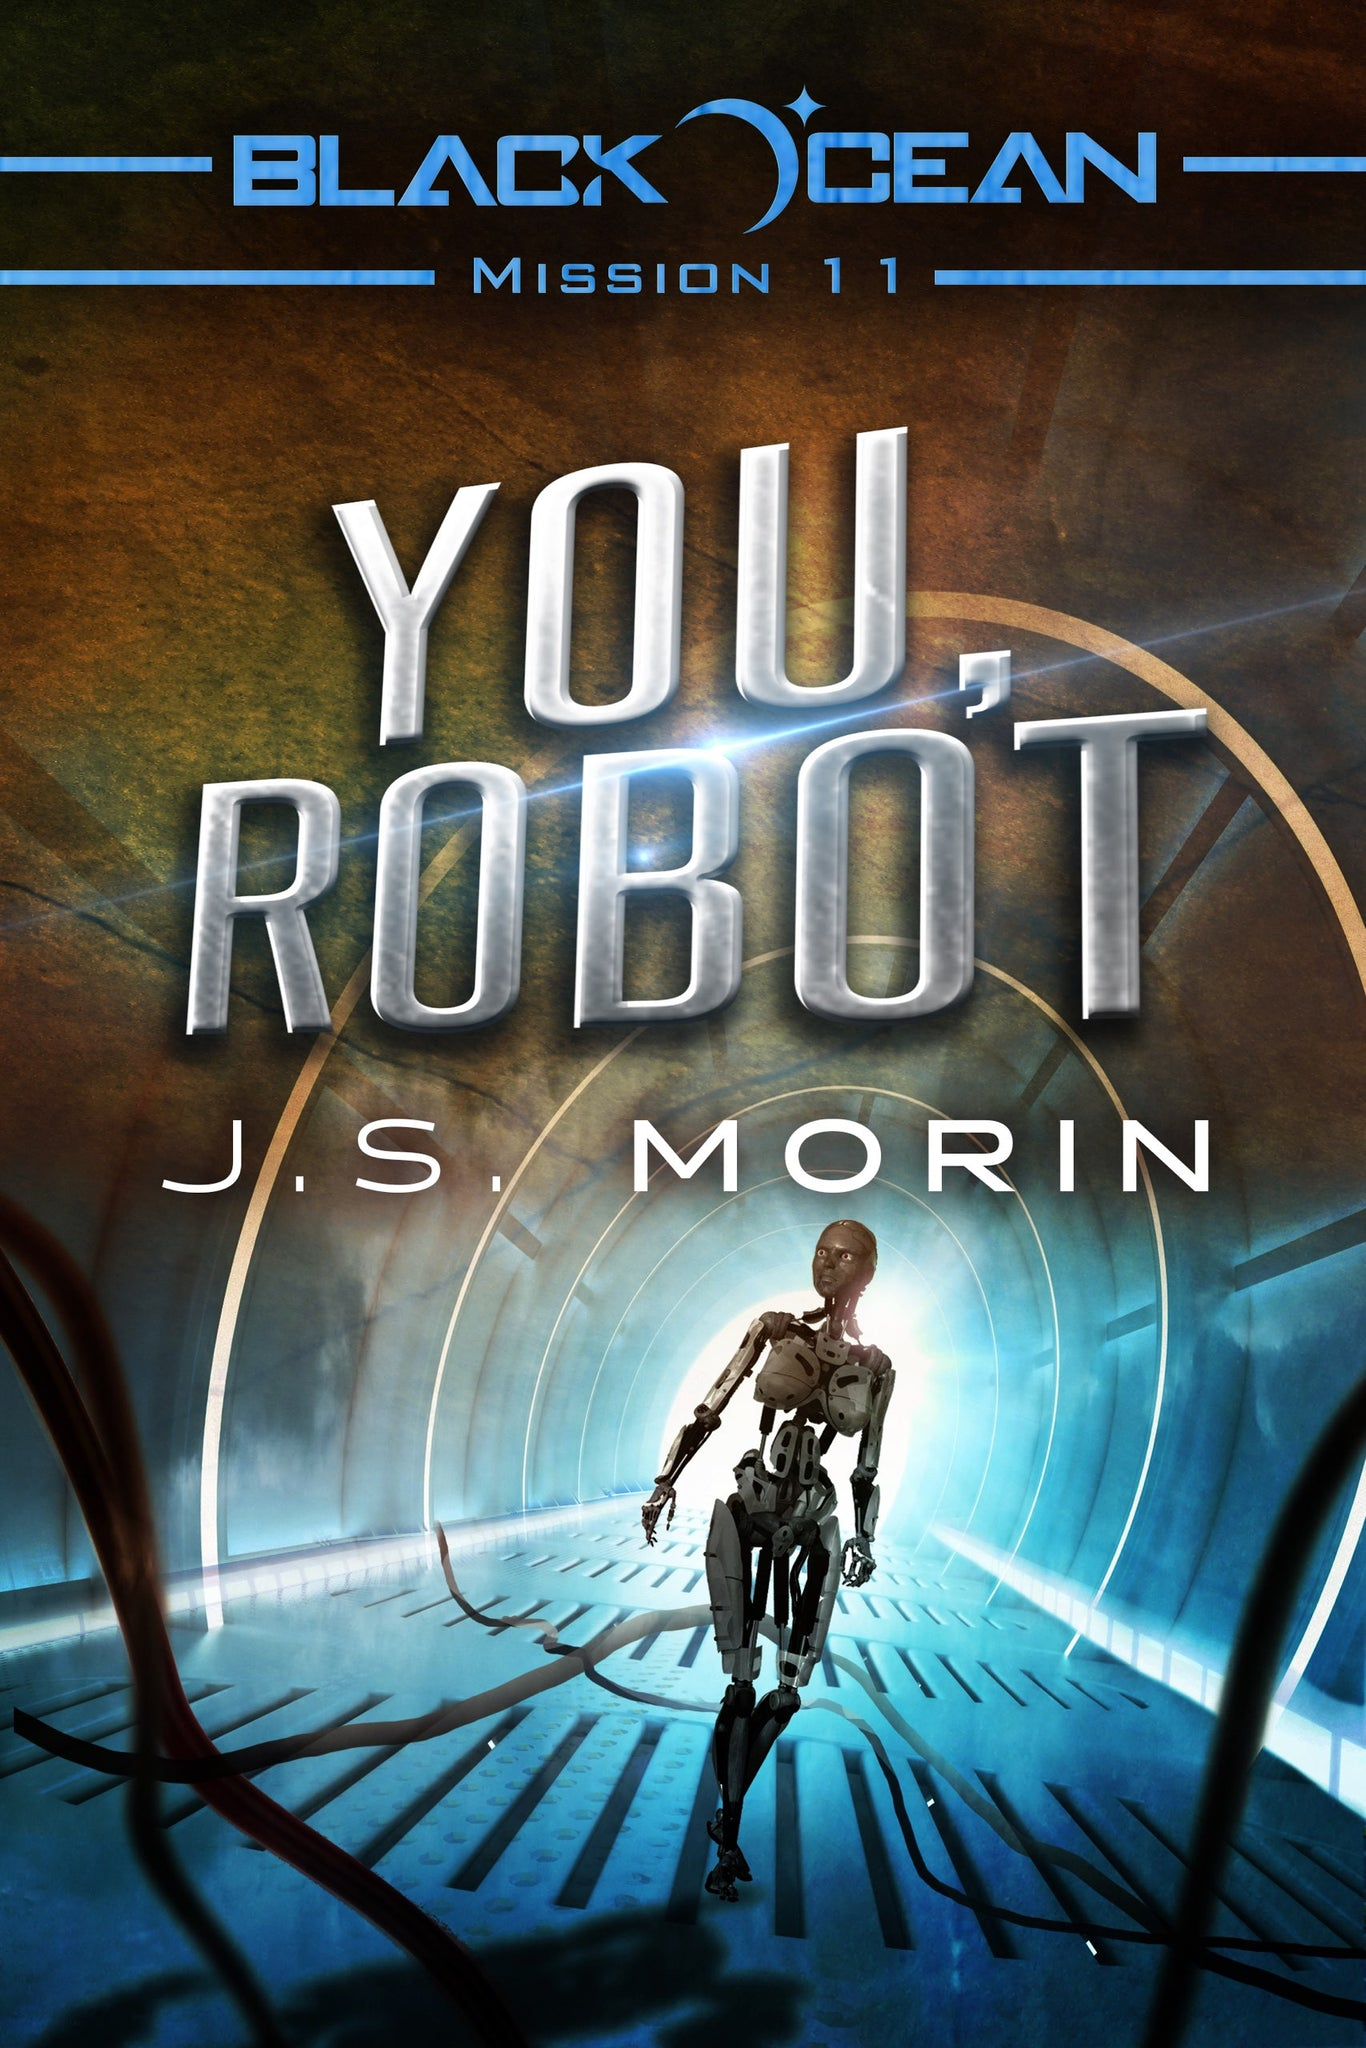 You, Robot, Black Ocean Mission 11